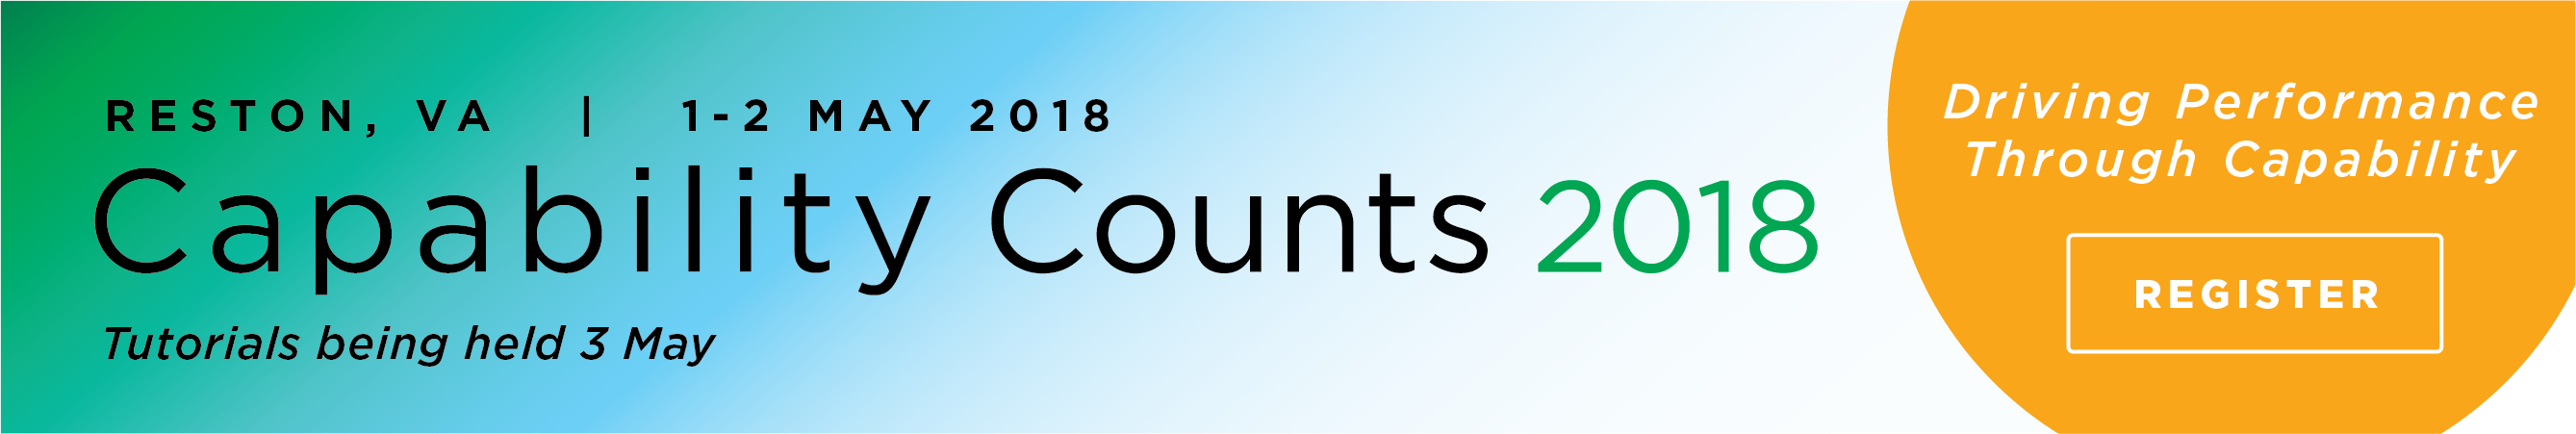 Capability Counts 2018